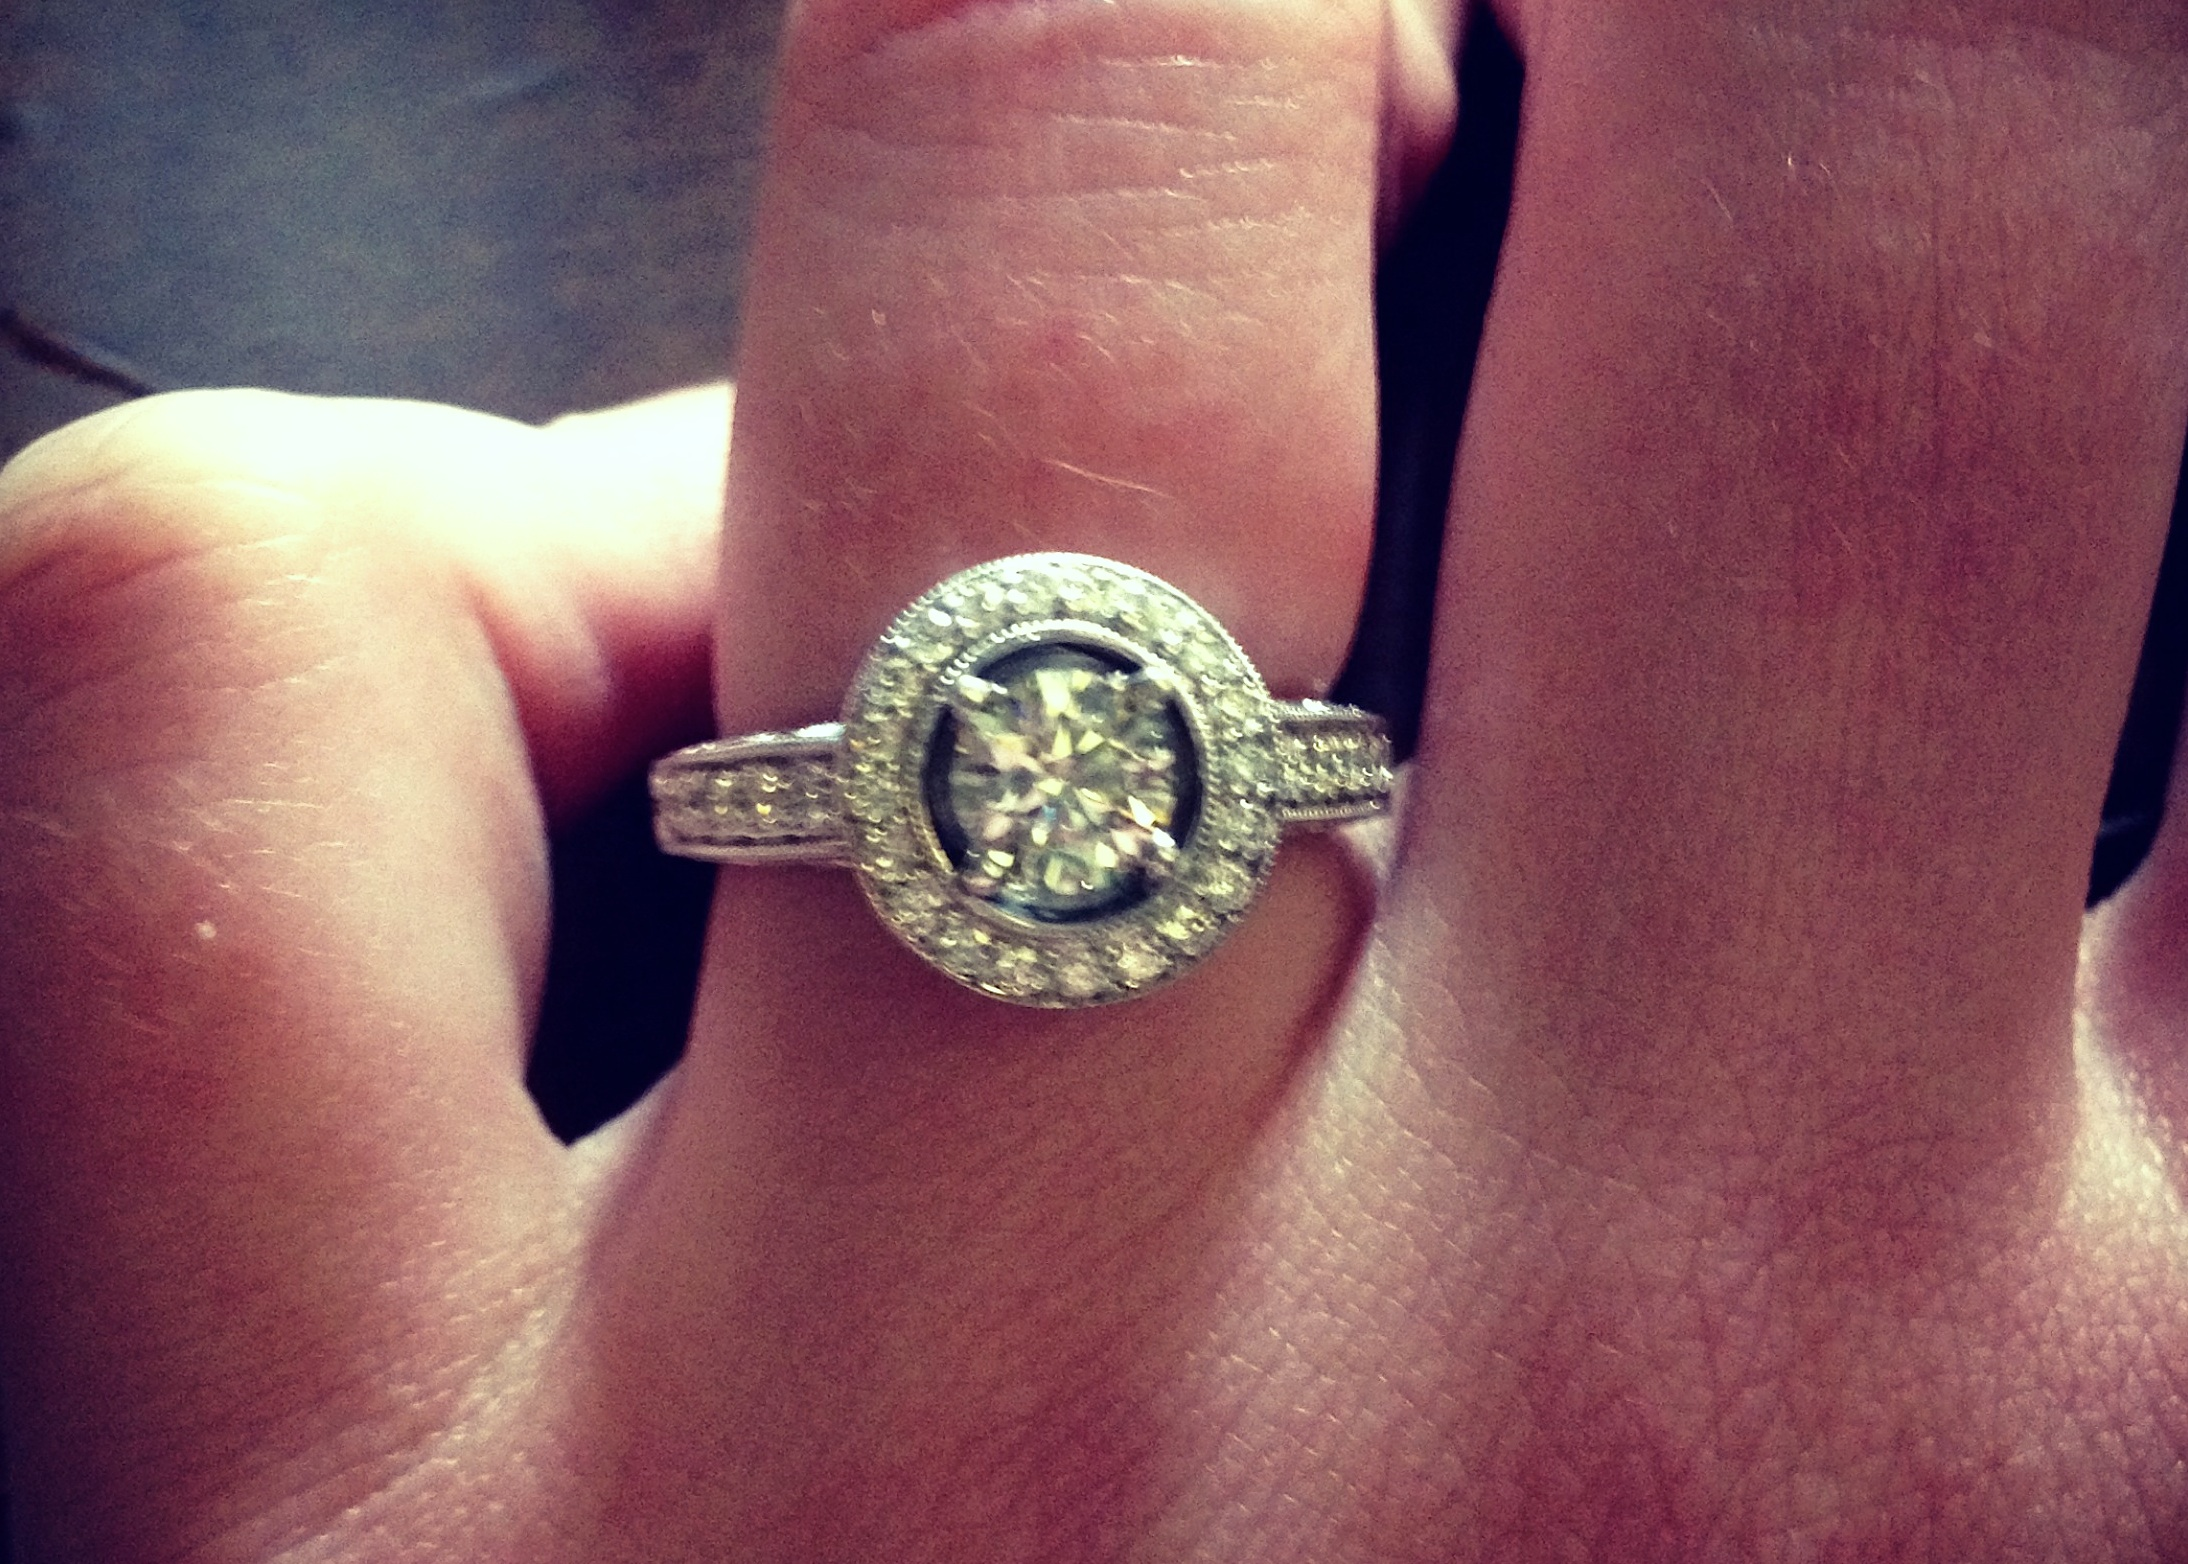 Image 8 of Reader's Rings II; Engagement Ring Photos Submitted by You!